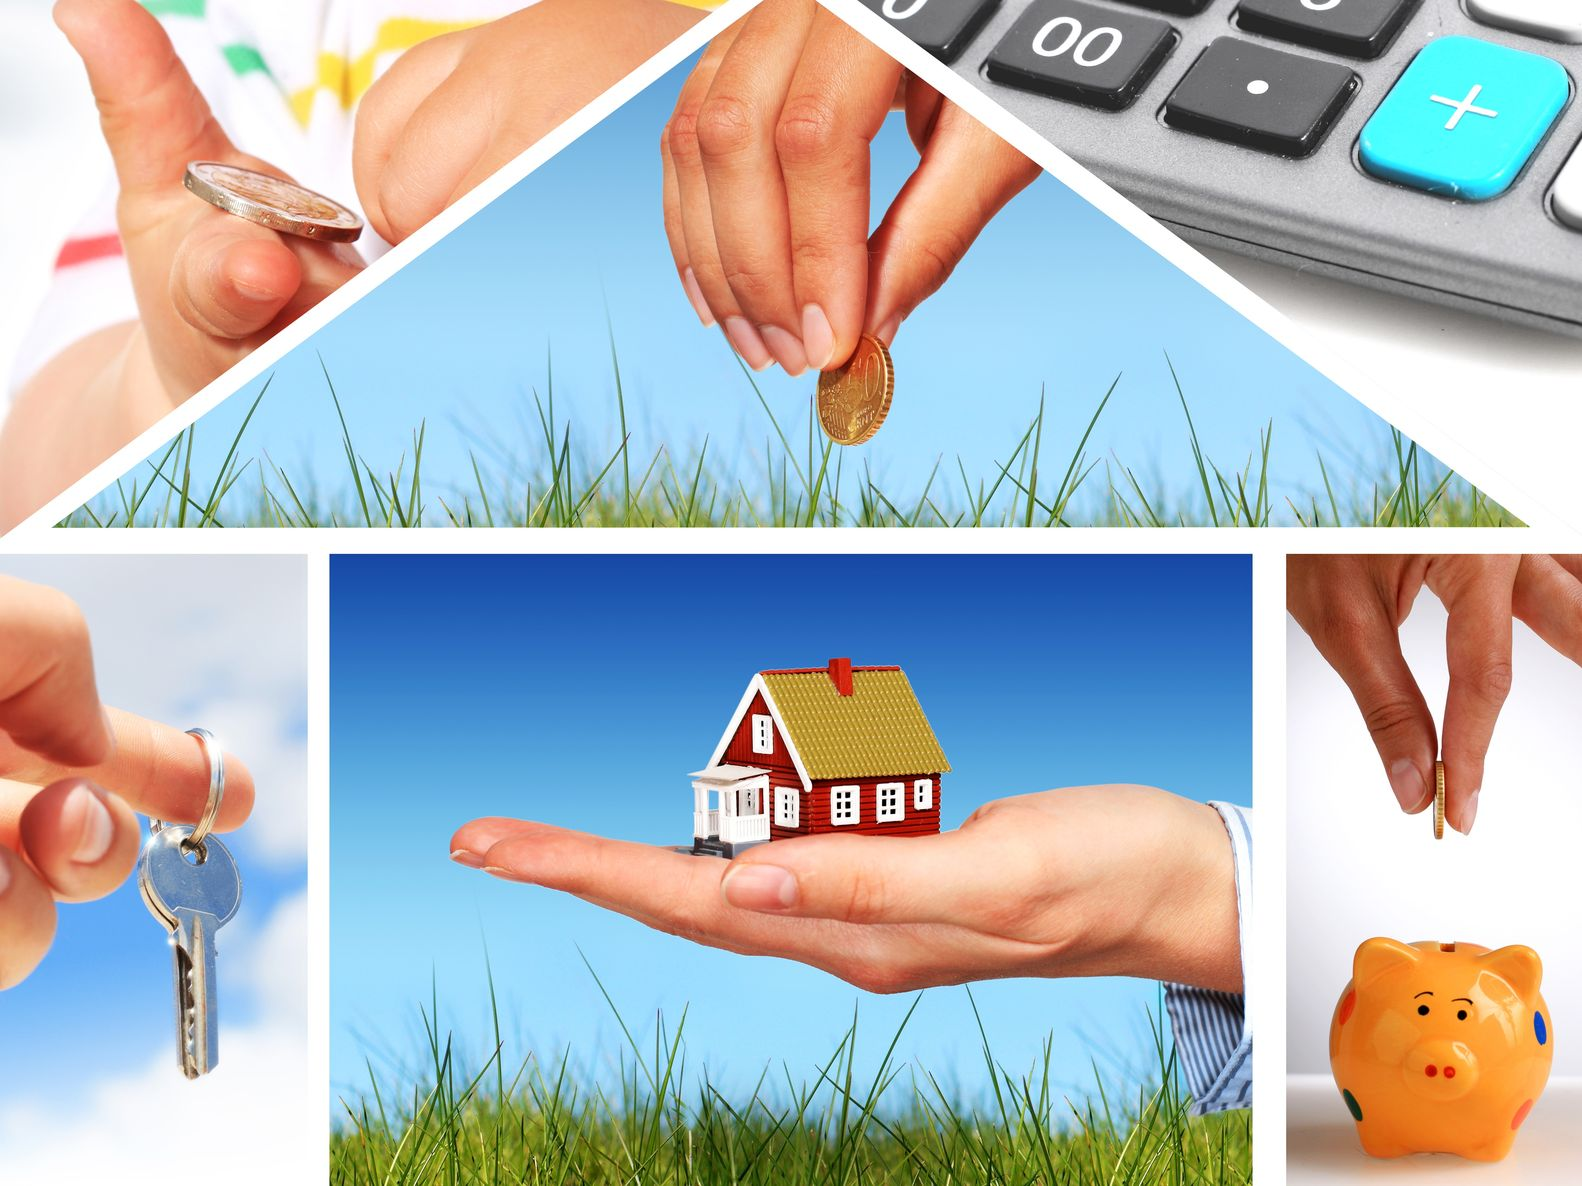 nri and property issues Parental care, personal care, real estate, nri services, property care services in pune ,india  income tax issues and many more domestic.